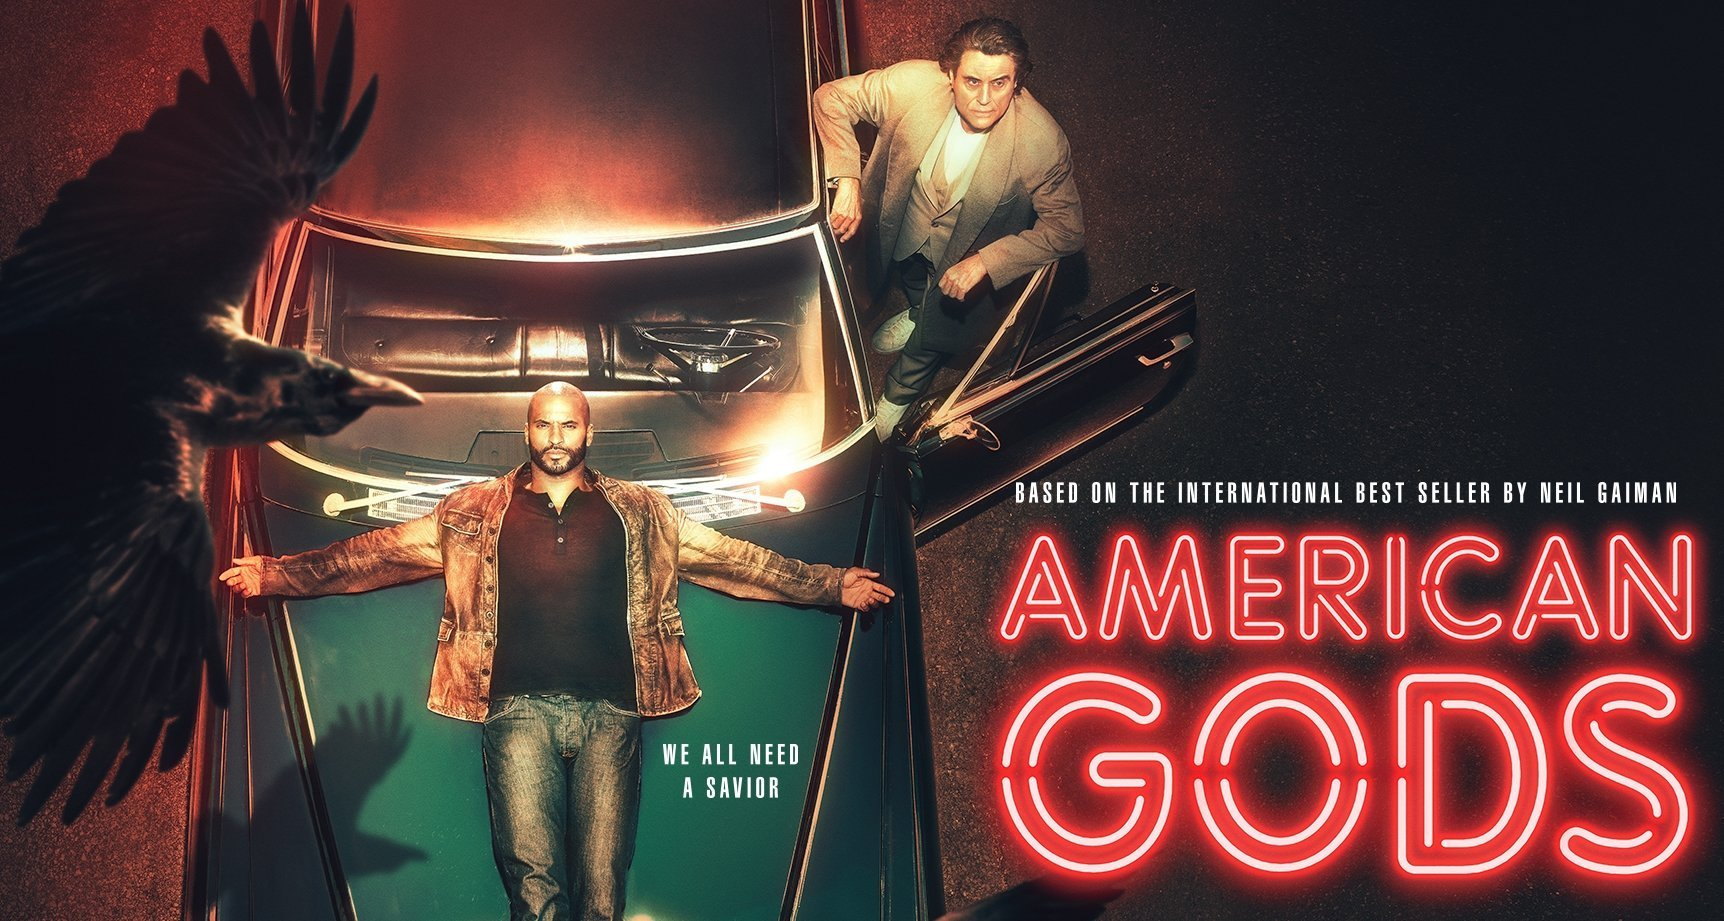 Ricky Whittle and Ian McShane in American Gods Season 2